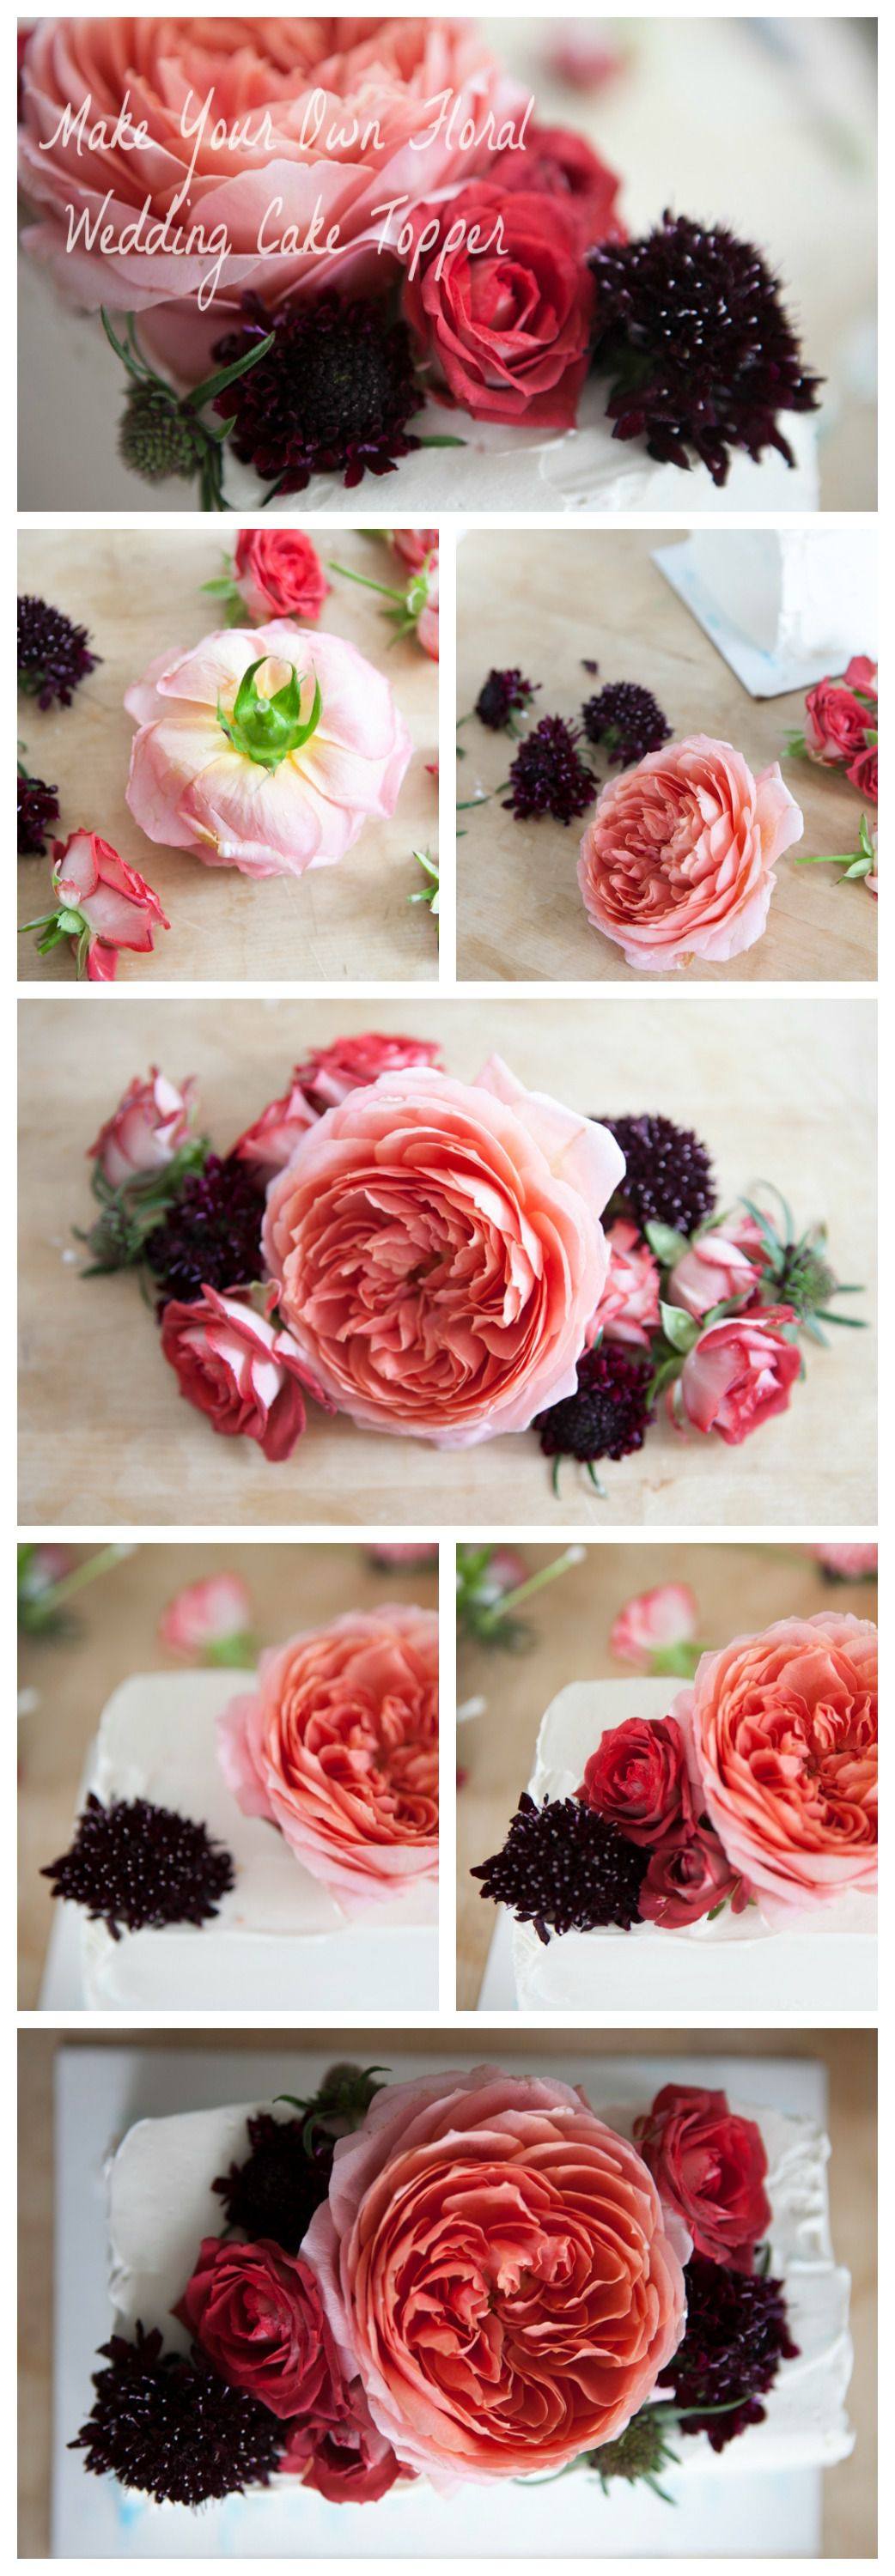 How To Make A Floral Wedding Cake Topper Rustic Wedding Chic